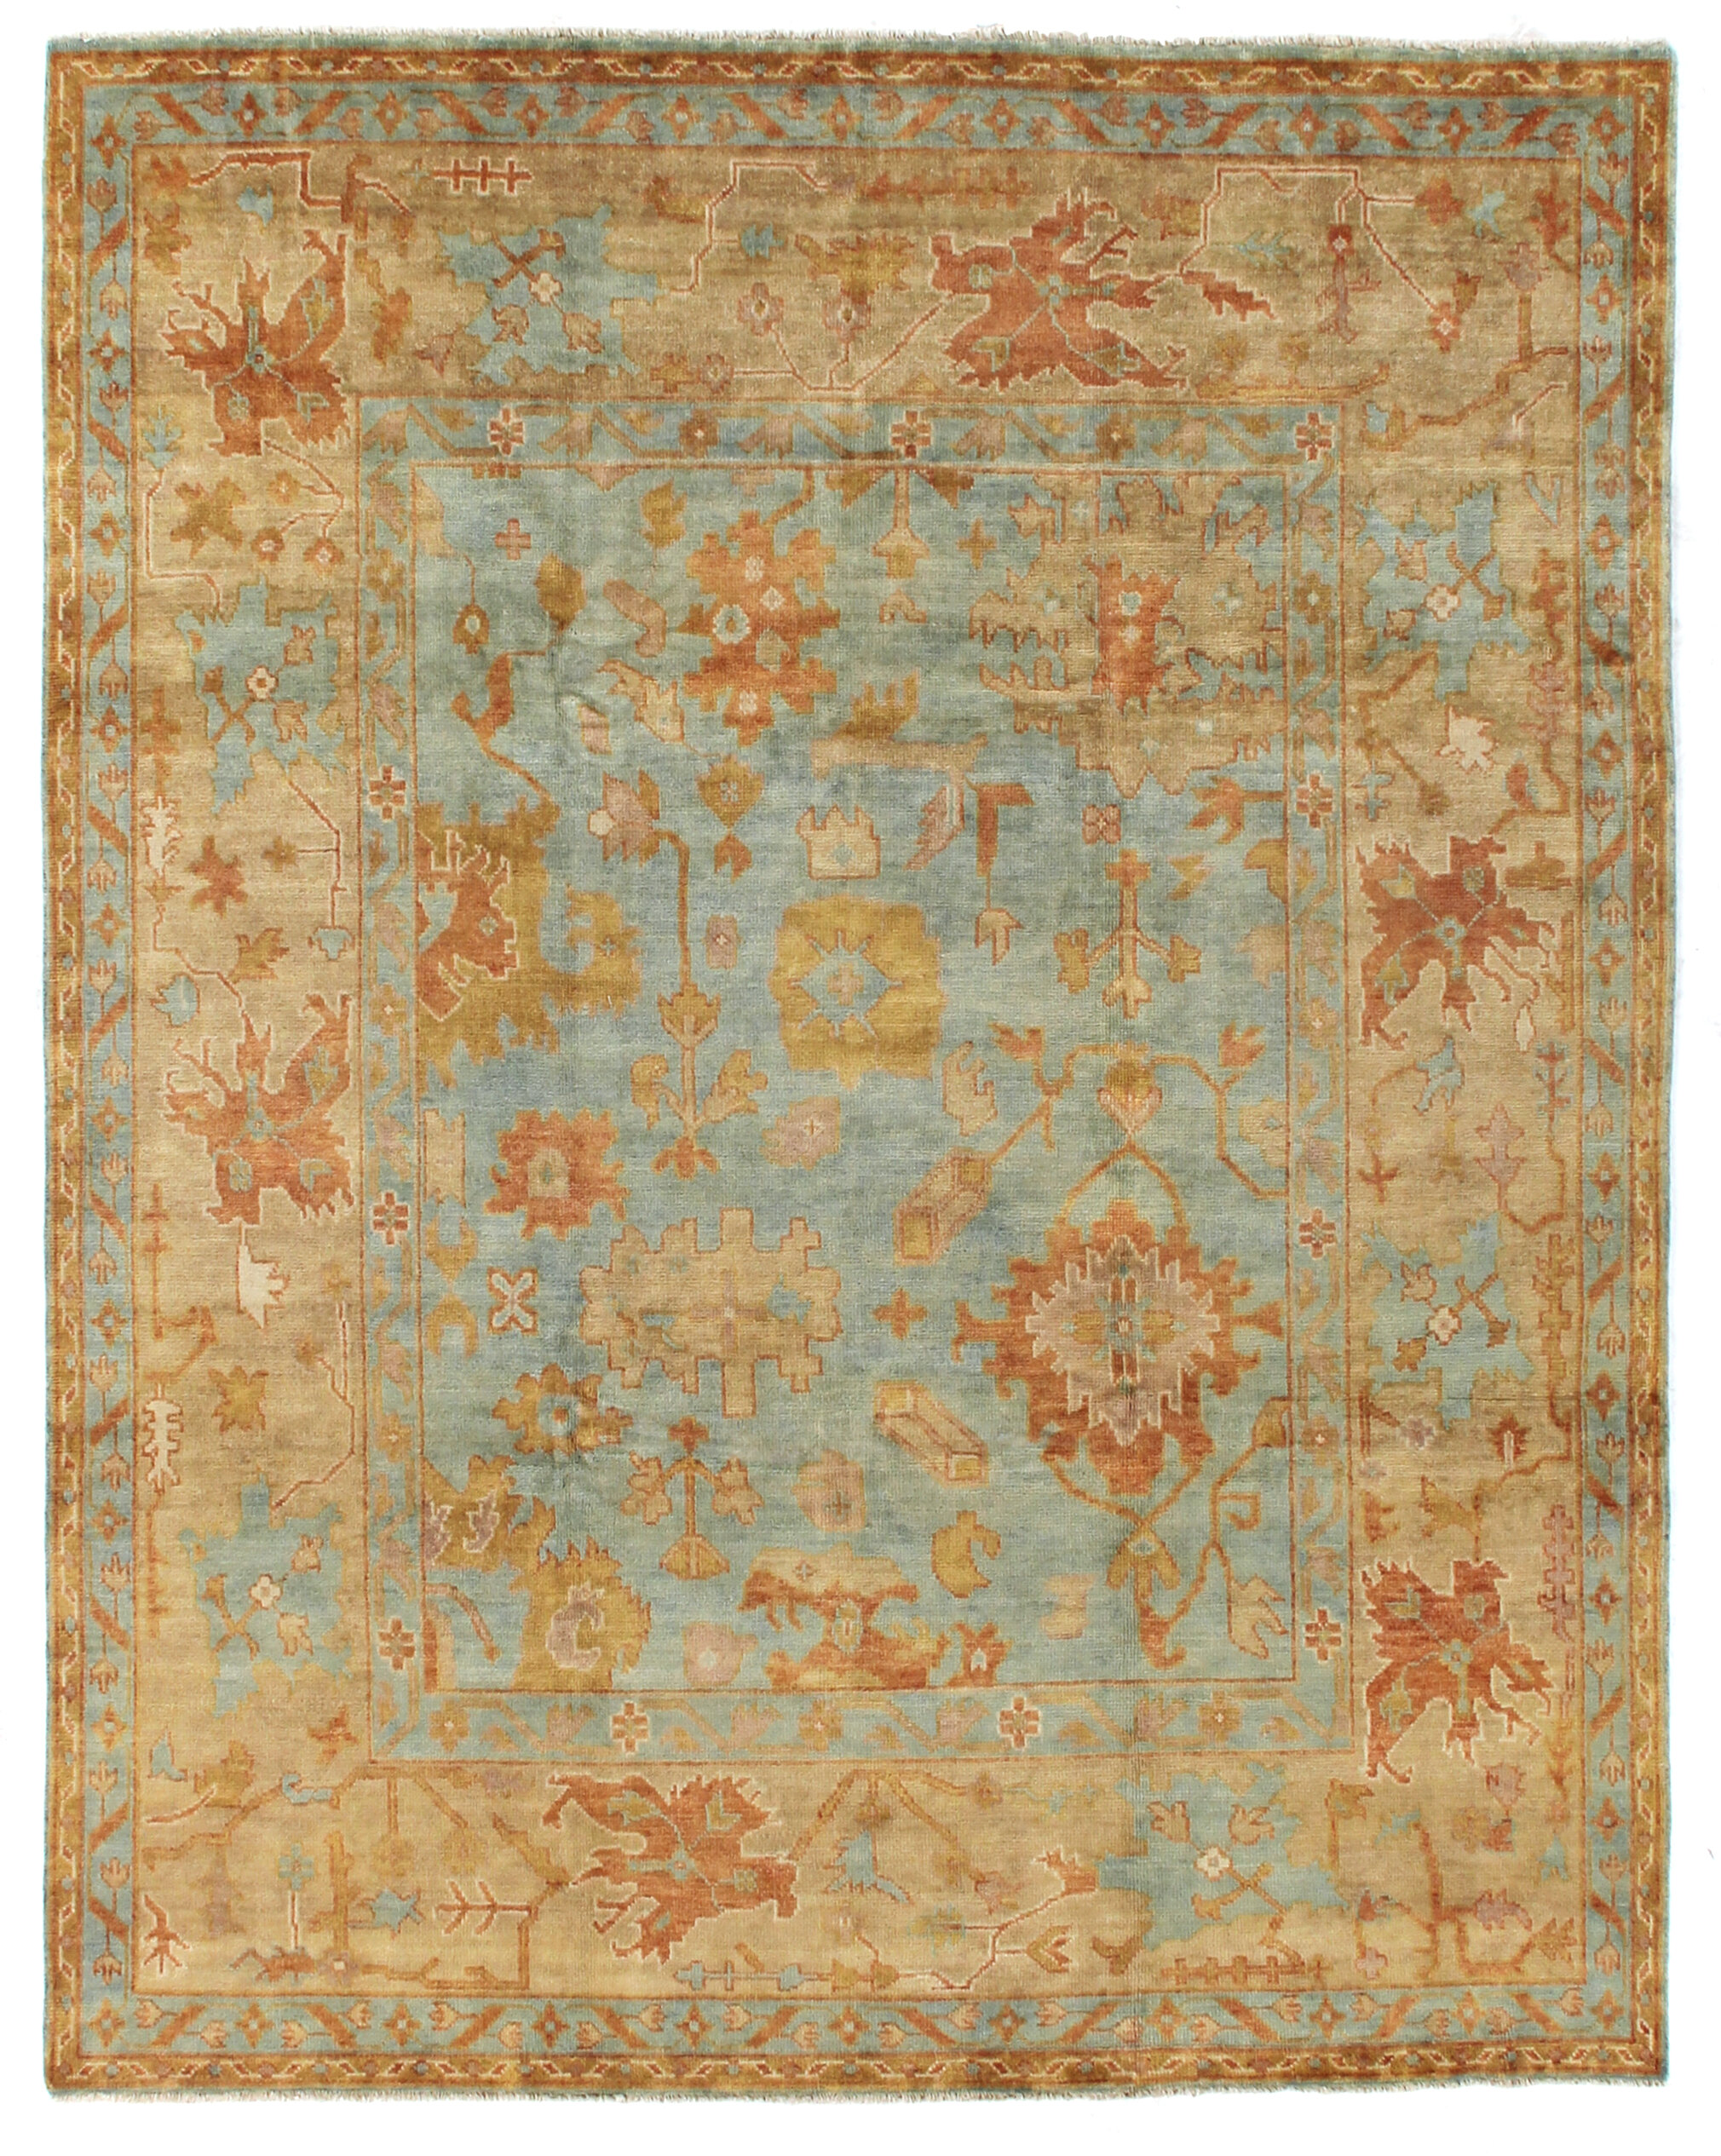 Salon Taupe Et Turquoise oushak oriental hand-knotted wool brown/blue area rug